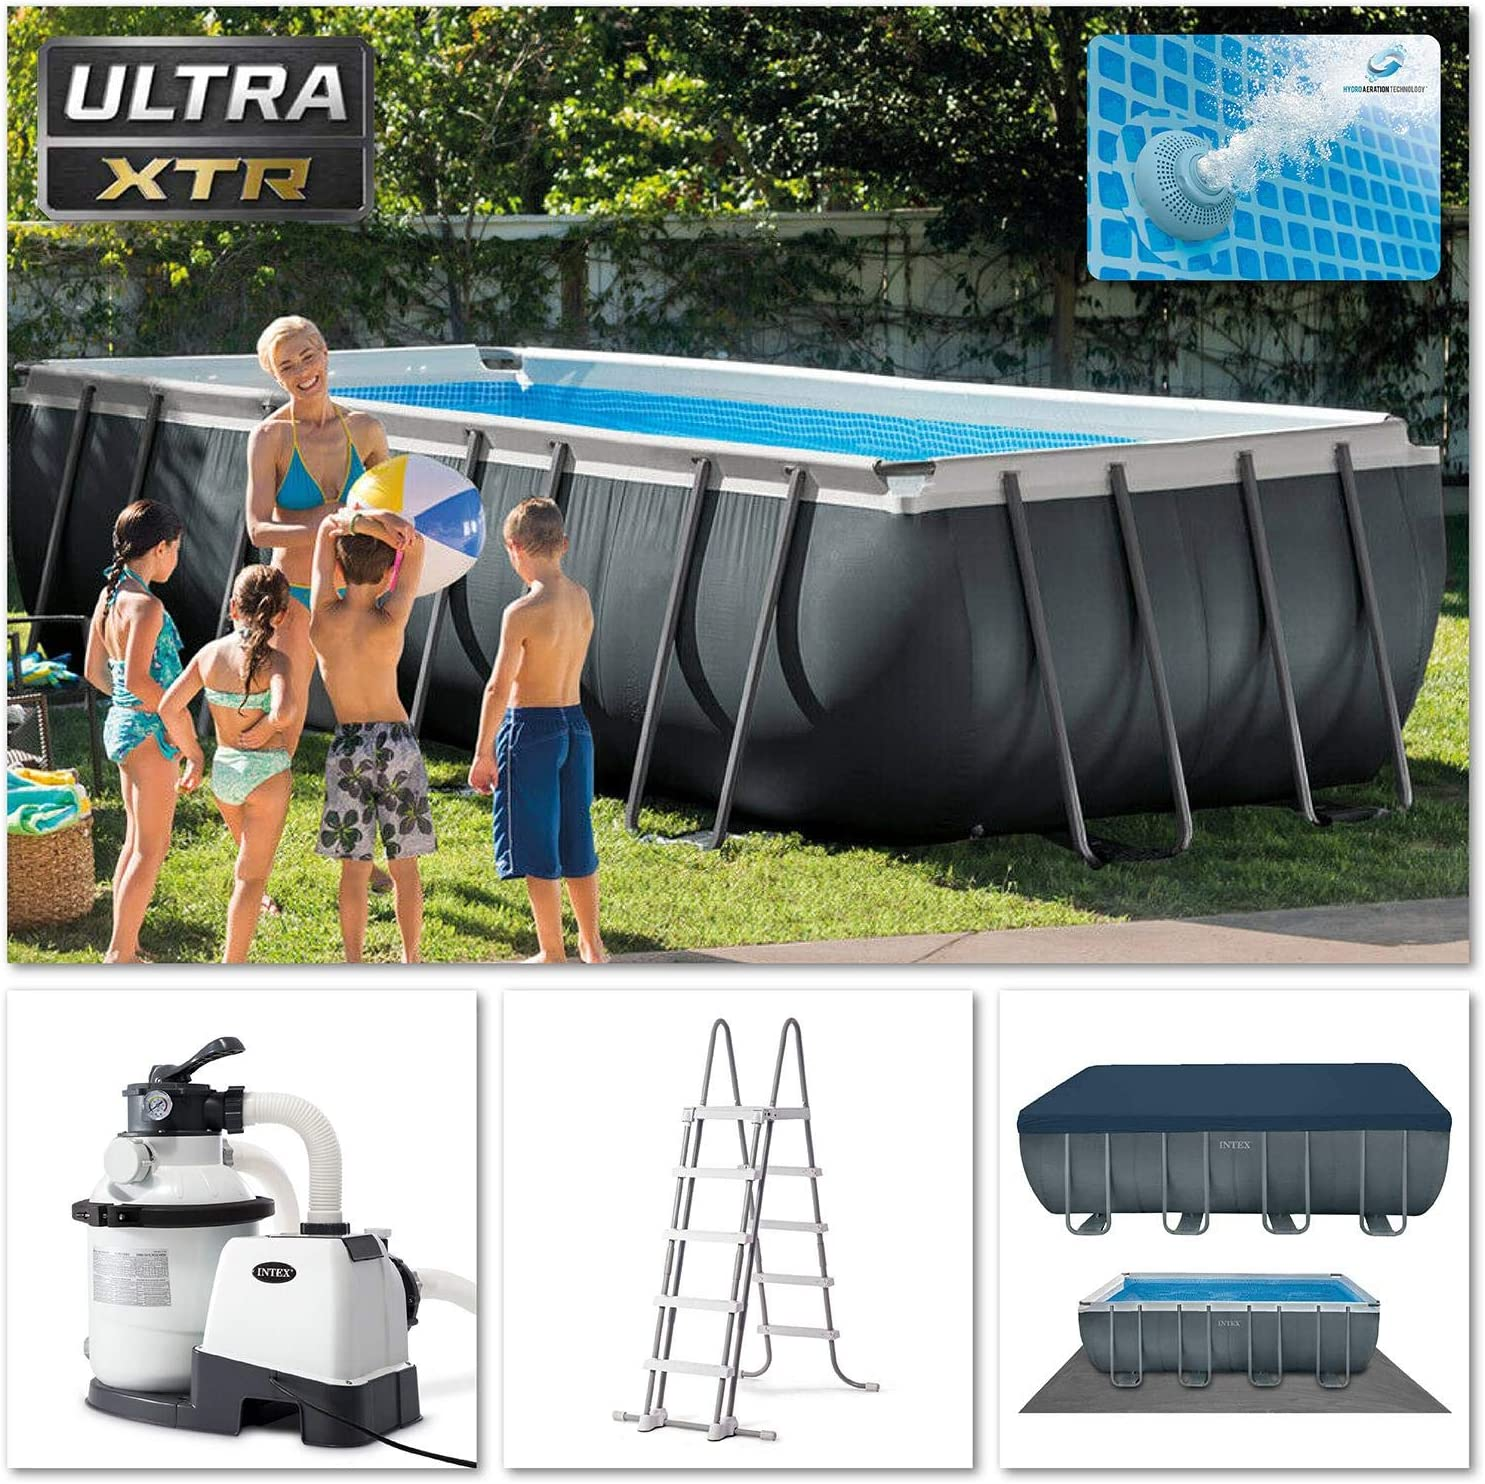 Intex 18Ft X 9Ft X 52In Ultra XTR Rectangular Pool Set: Amazon.es ...